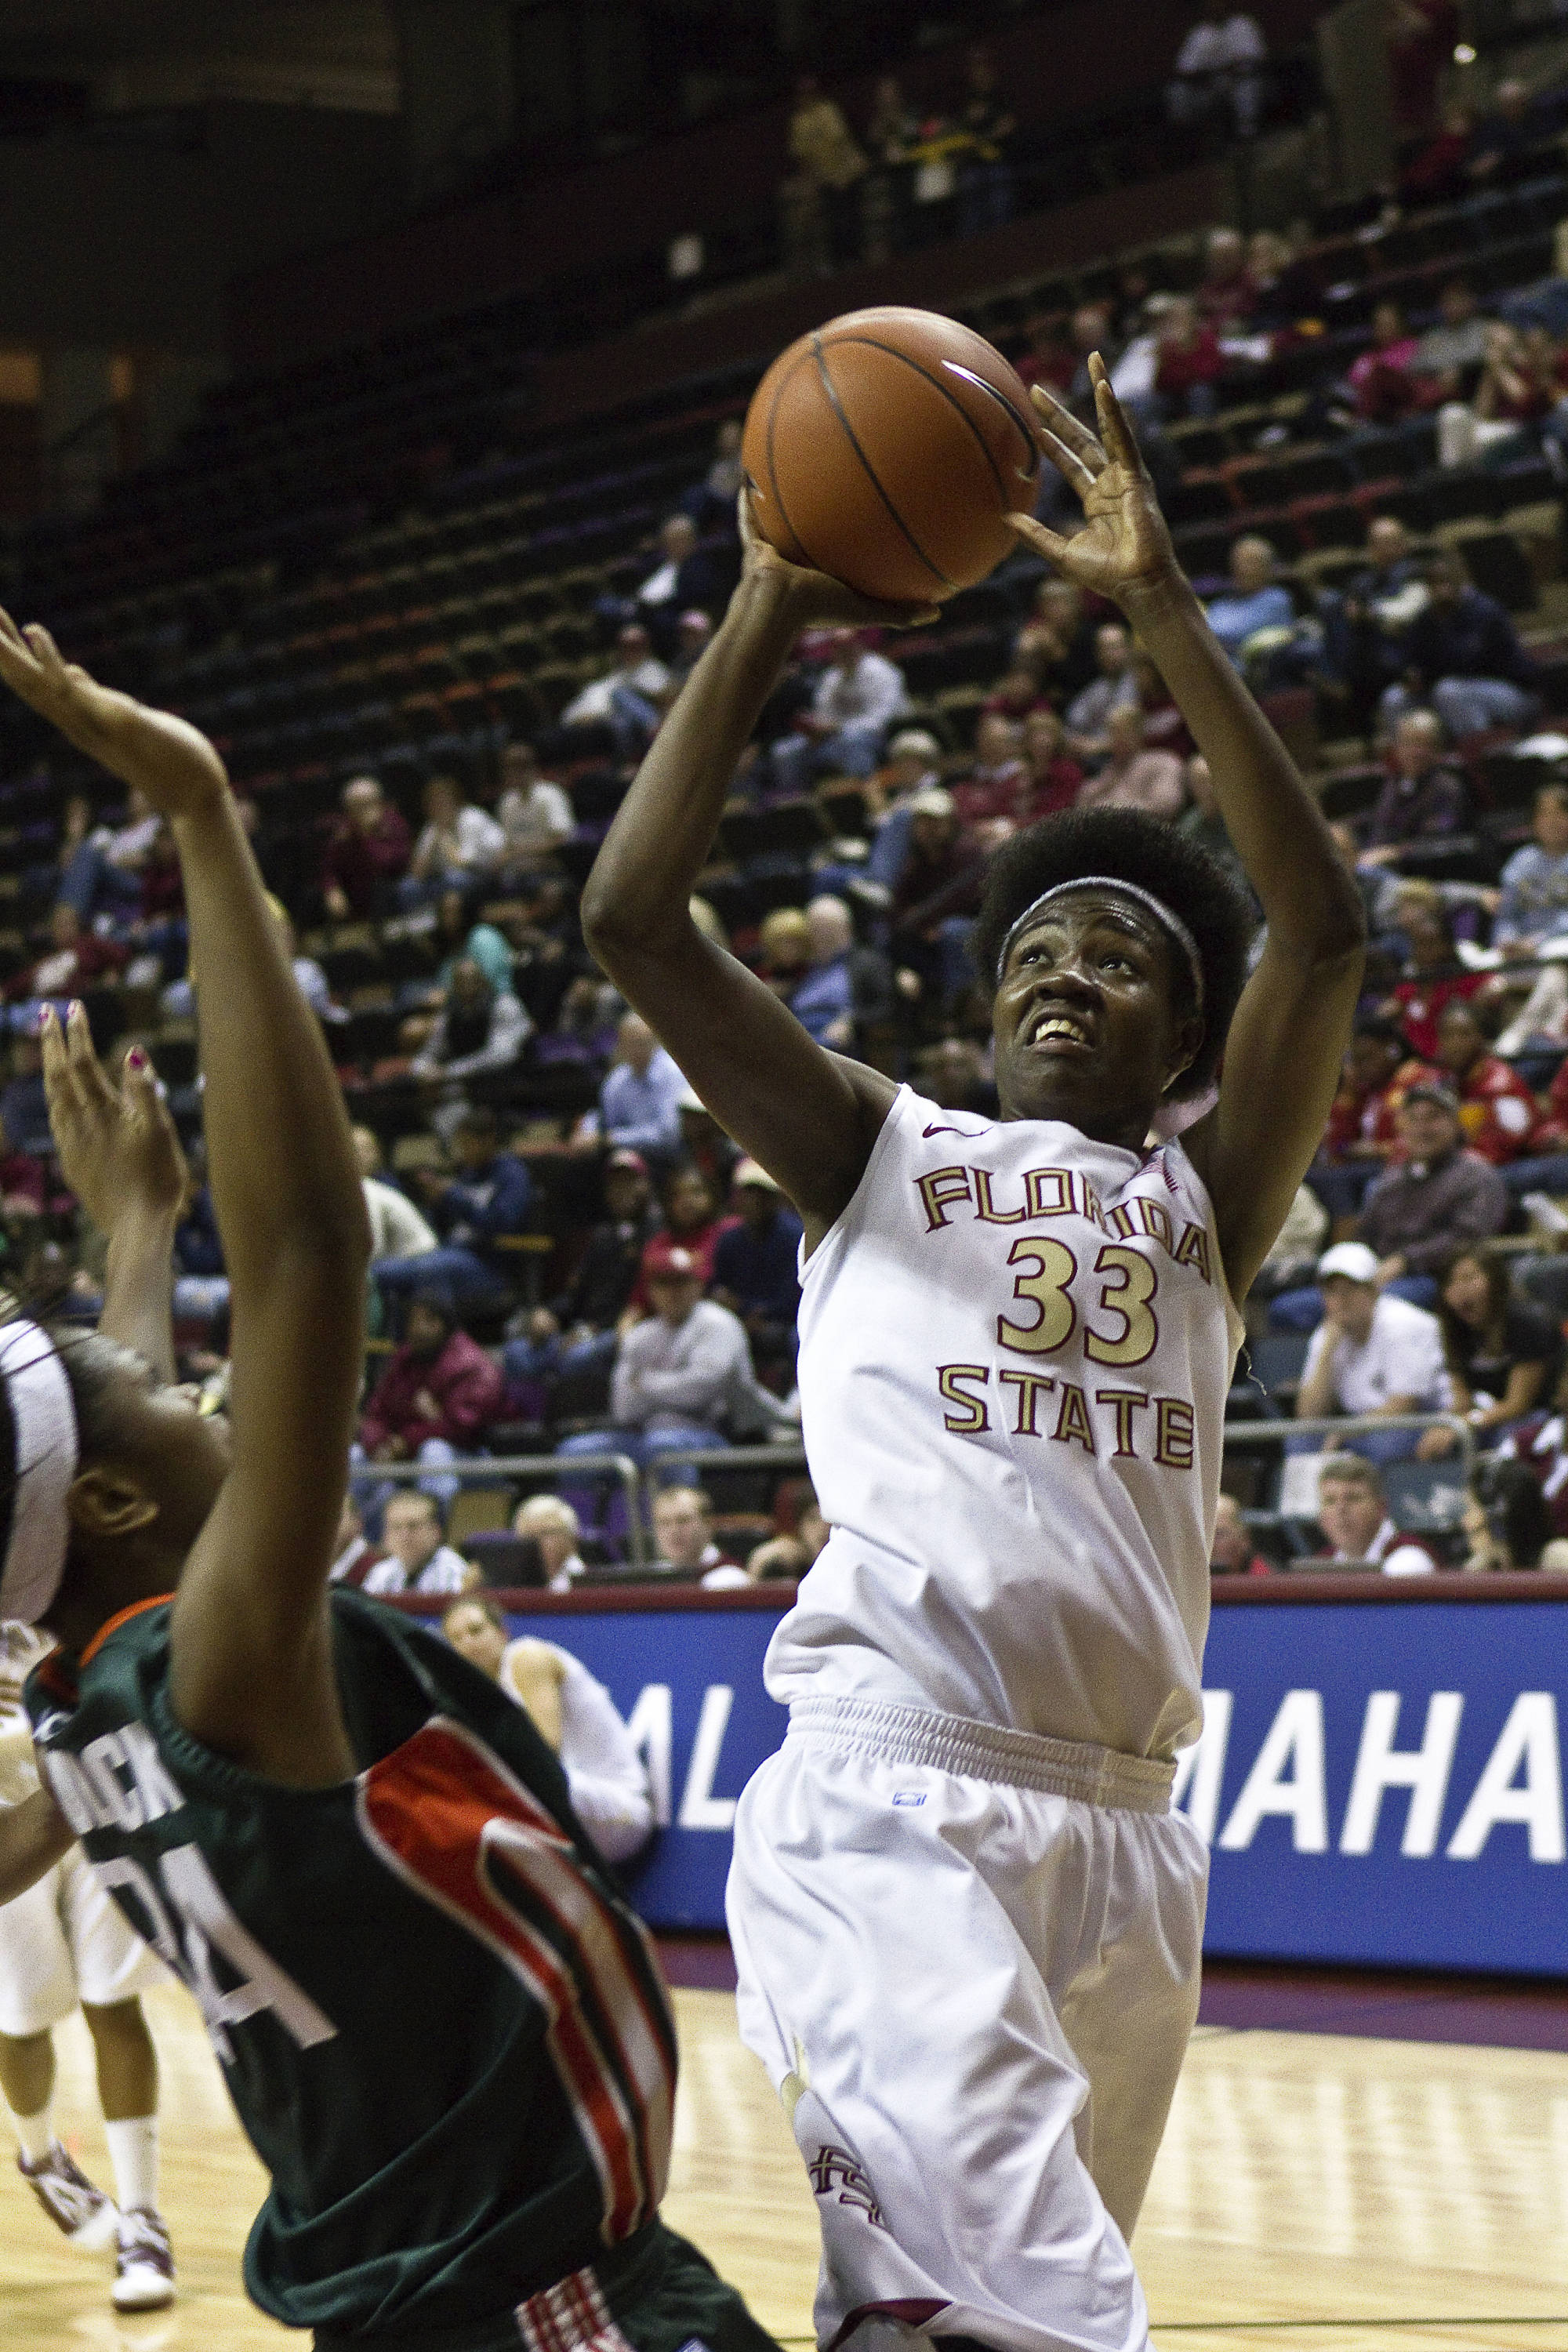 FSU vs Miami - 01/24/11 - Natasha Howard (33)